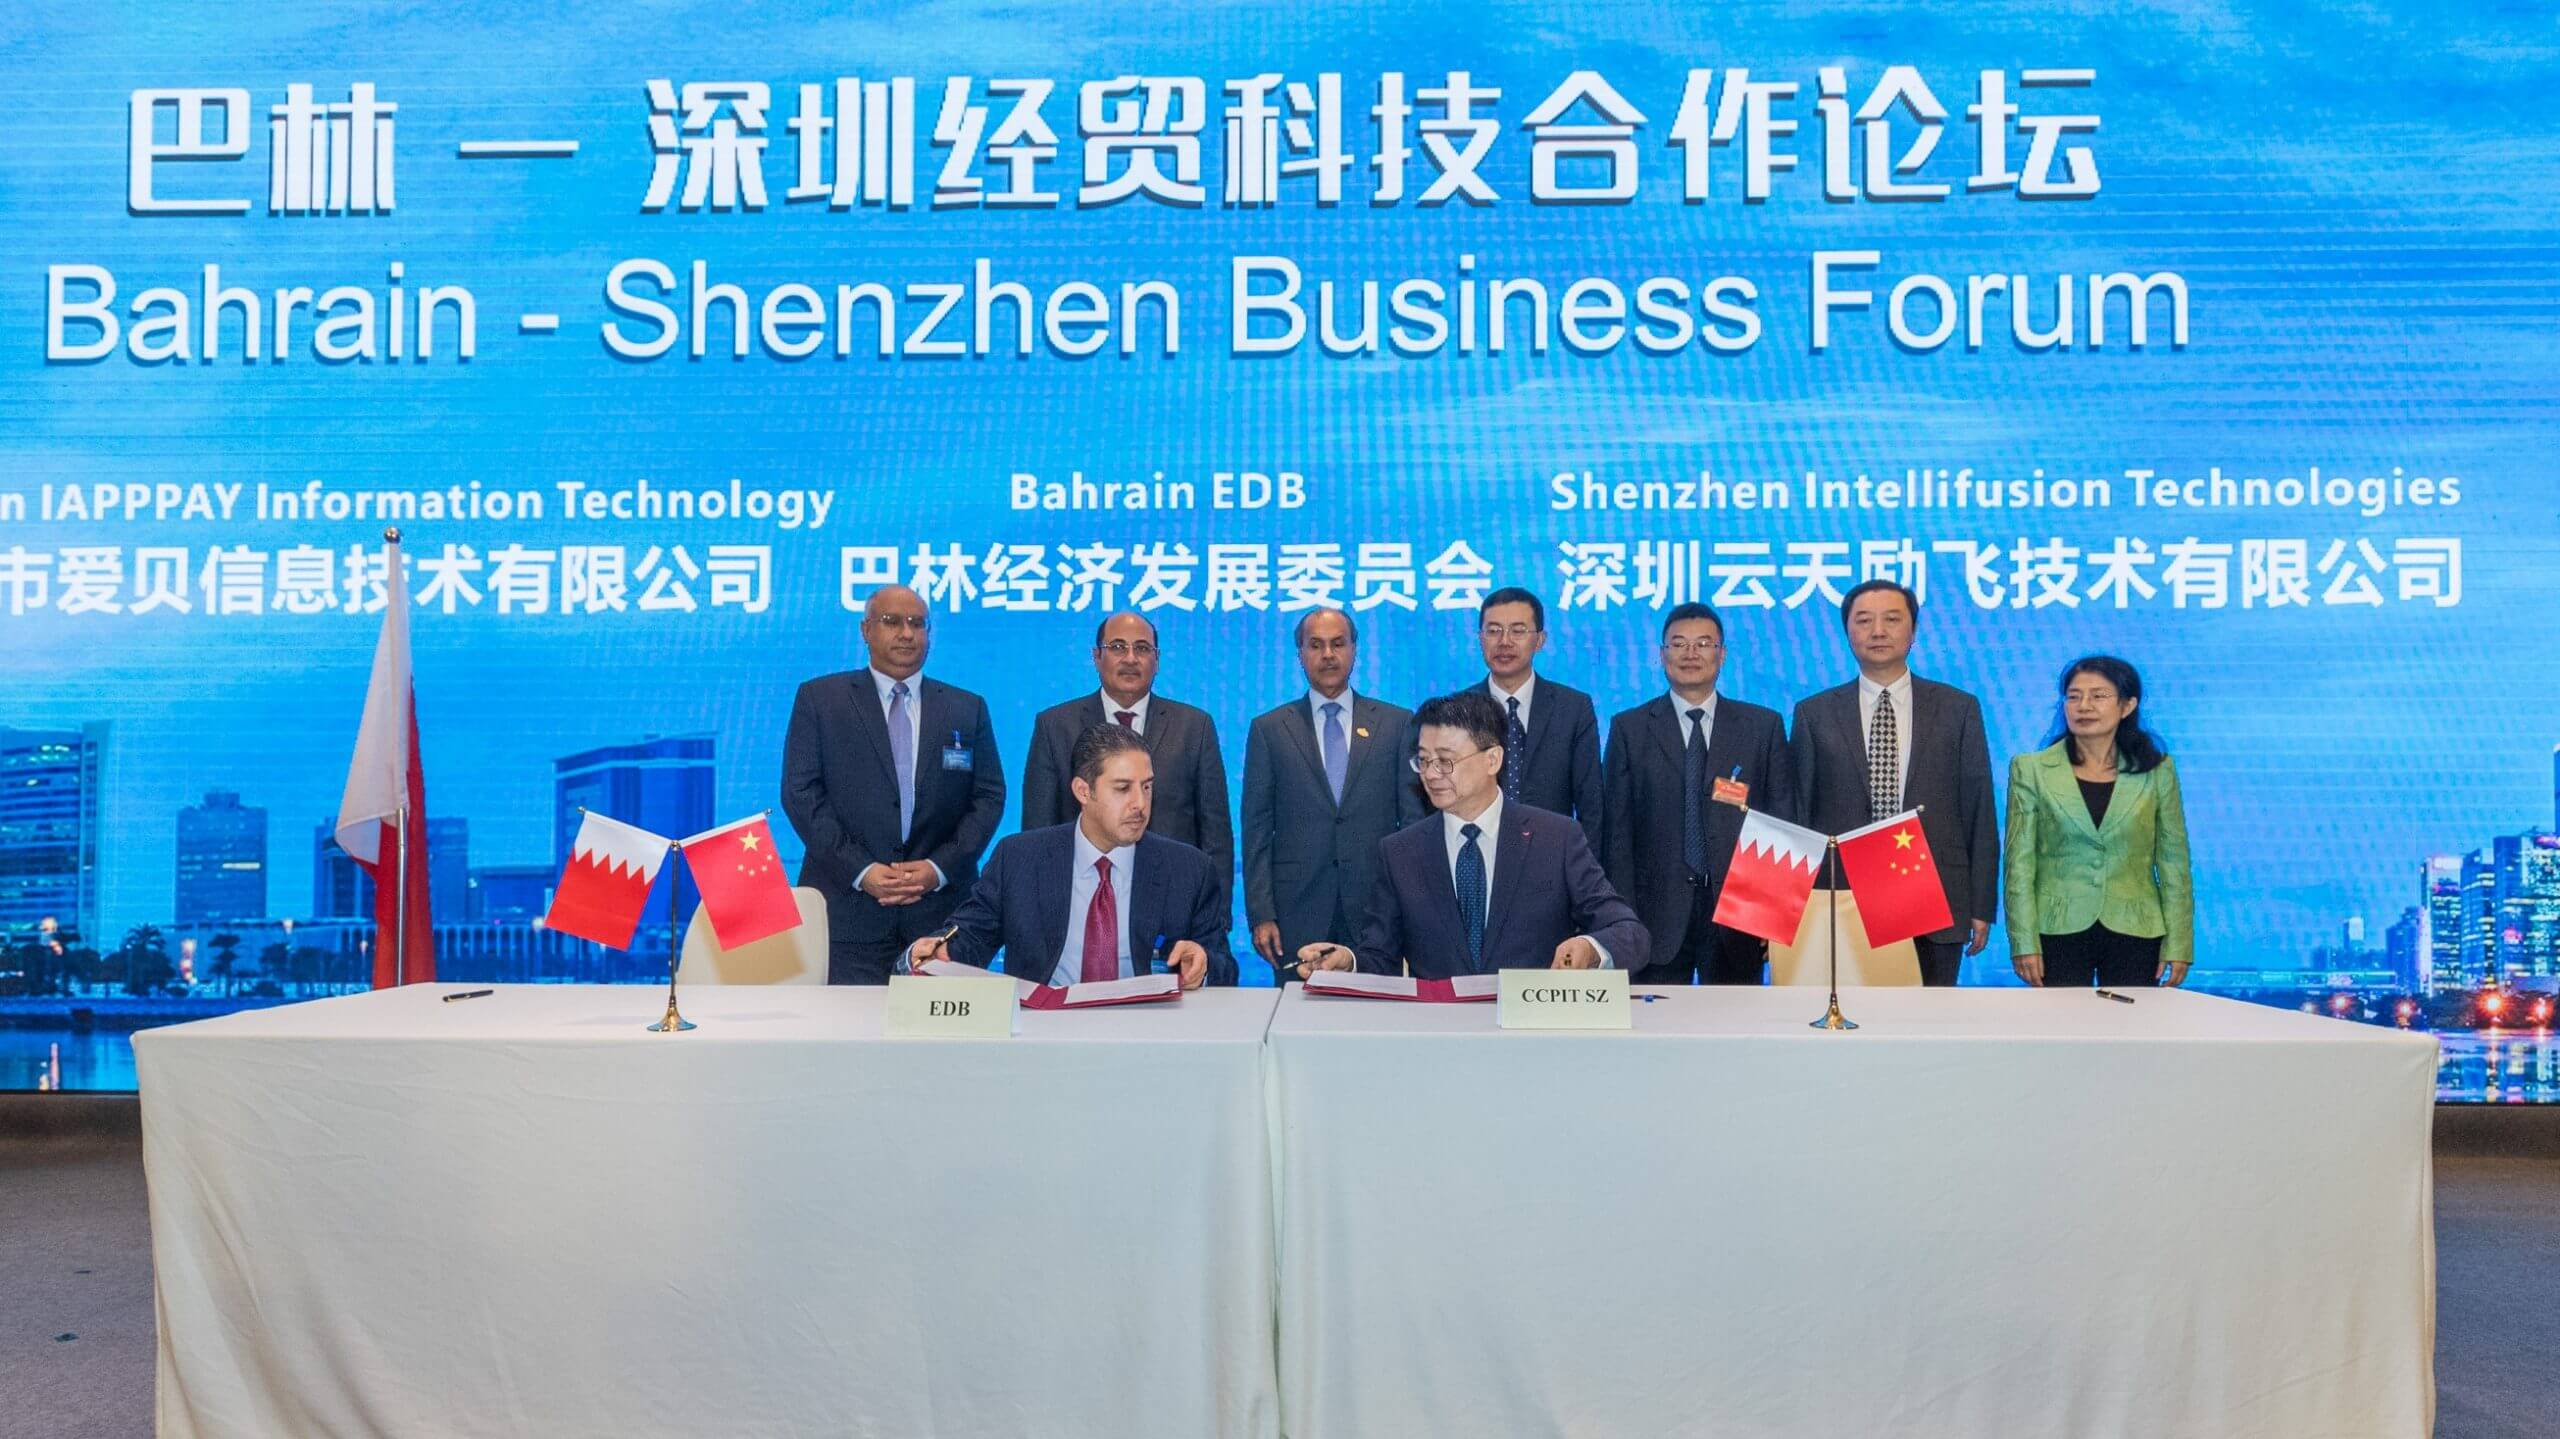 Bahrain signs eight landmark agreements to deepen economic ties with Shenzhen